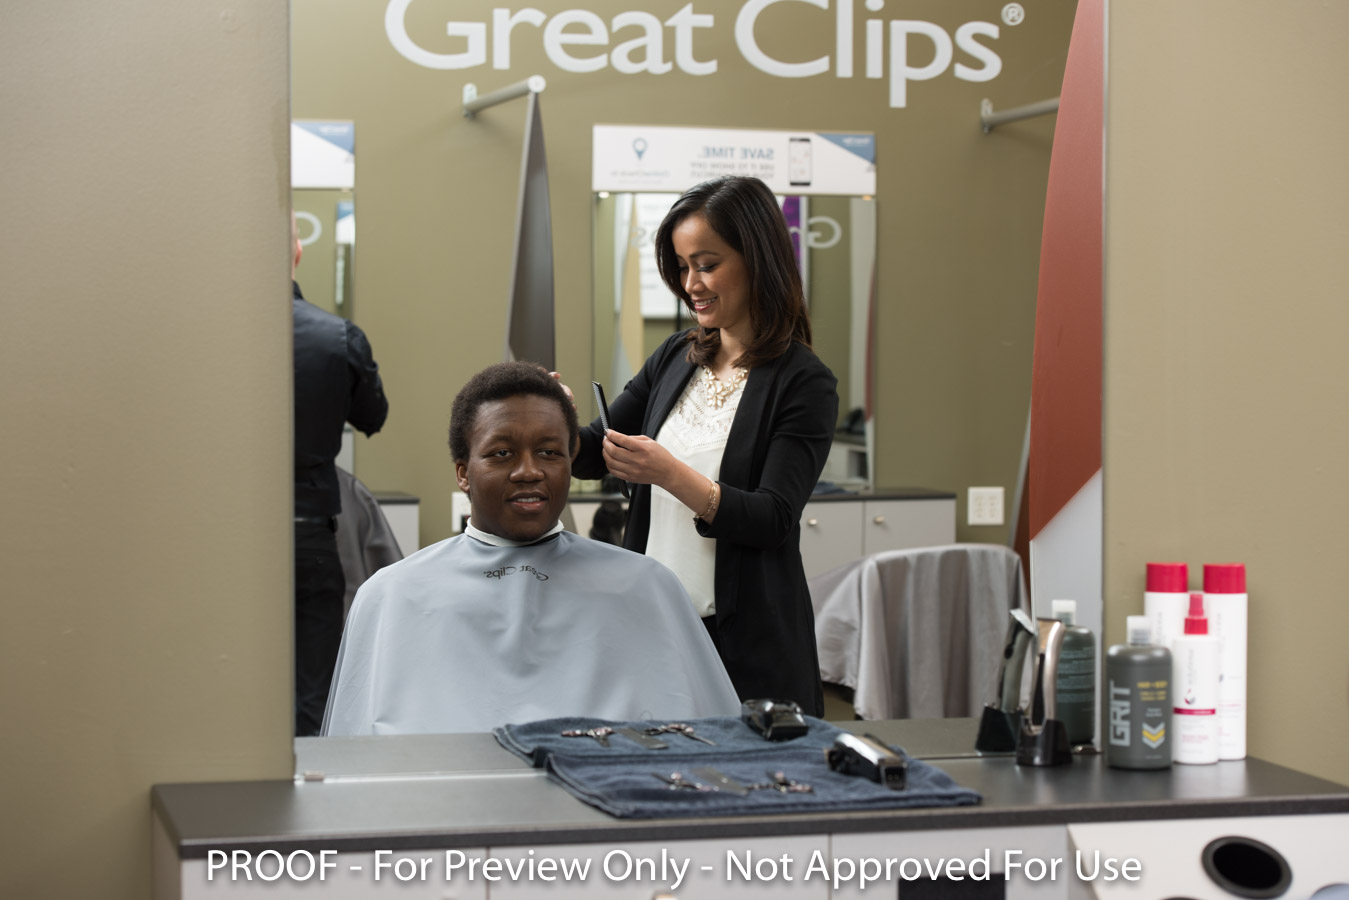 Customer getting a haircut at Great Clips